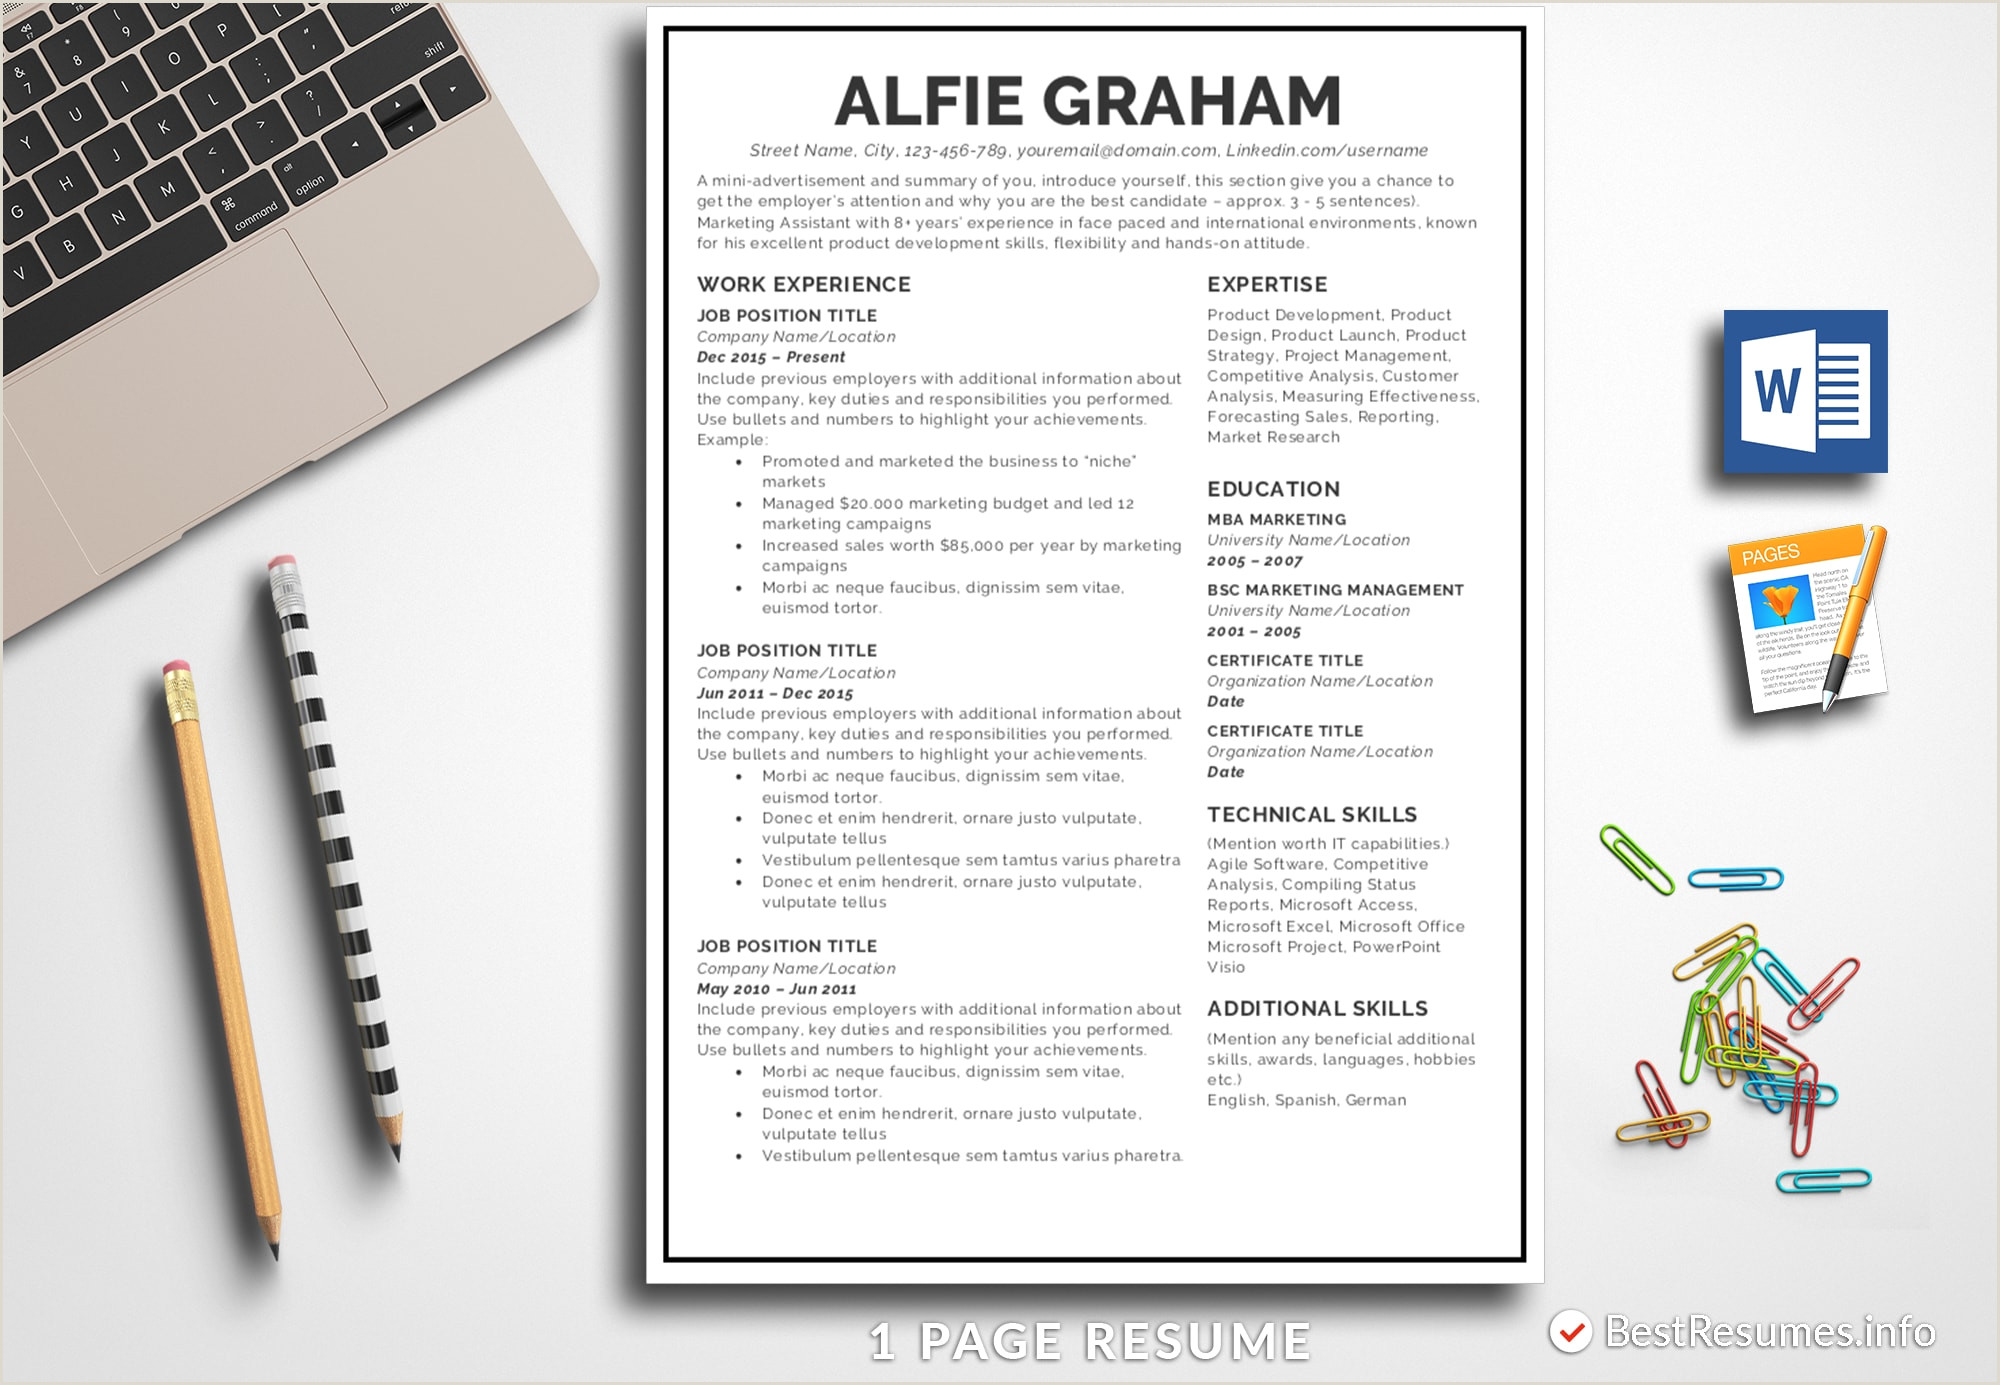 Resume Templates for Apple Pages Simple Resume Template Alfie Graham Bestresumes